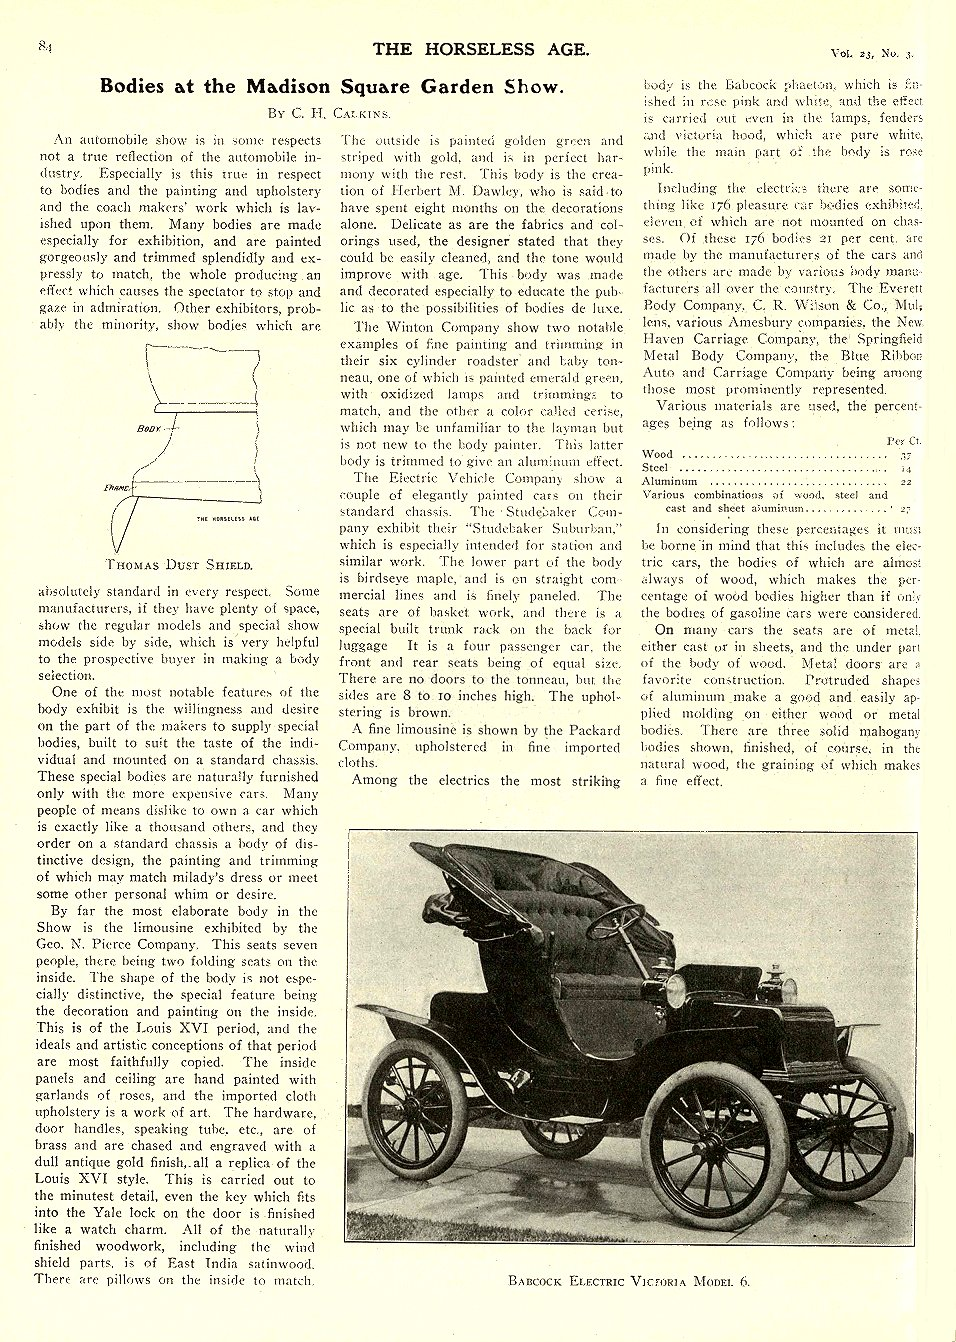 1909 1 20 BABCOCK Electric Babcock Electric Victoria Model 6 THE HORSELESS AGE January 20, 1909 University of Minnesota Library 8.25″x11.5″ page 84